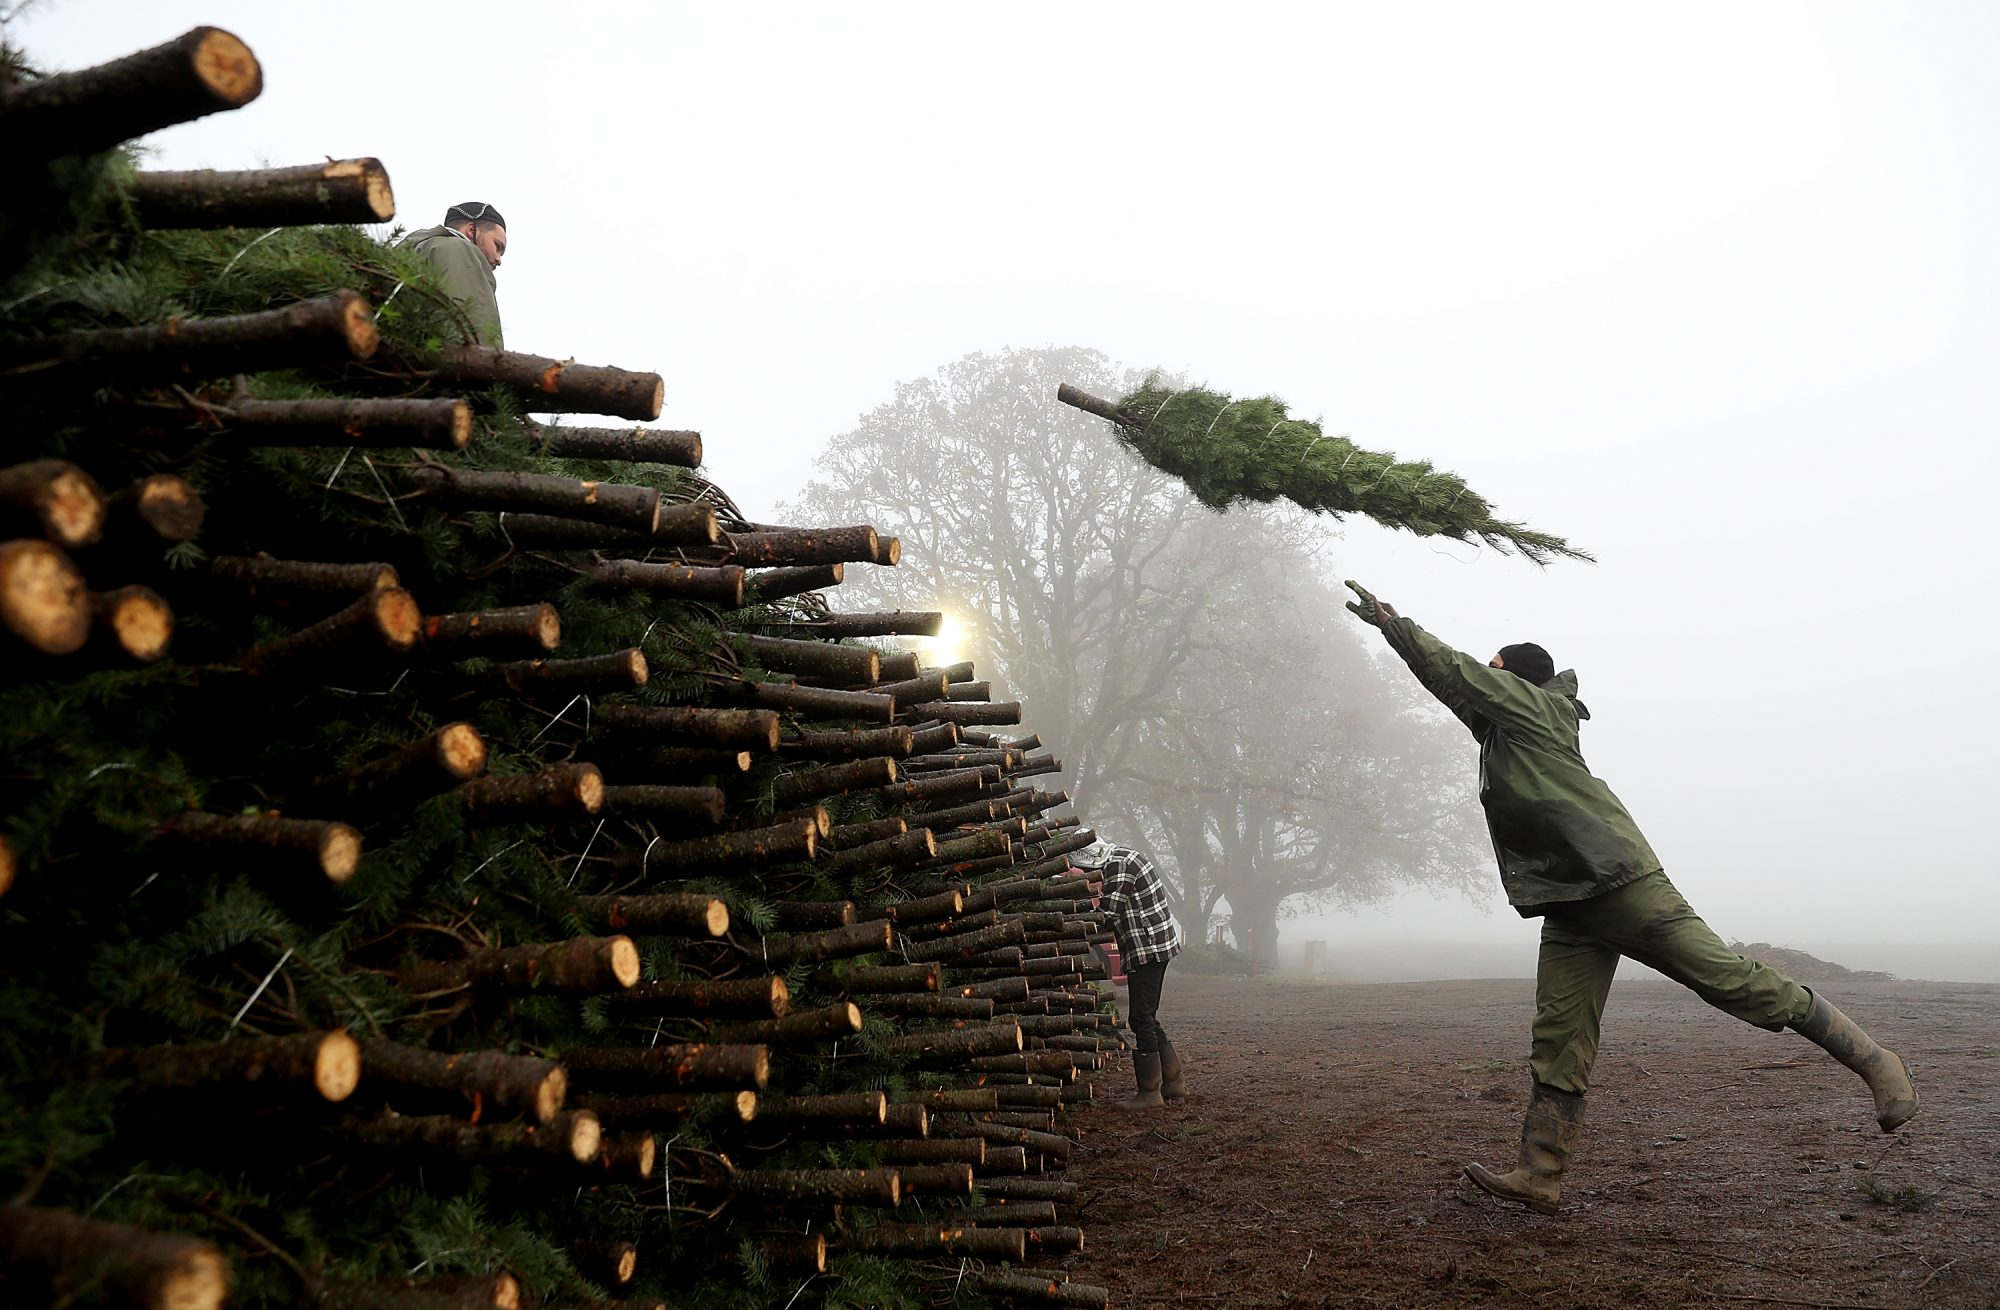 Oregon Christmas Tree Farm Harvests Trees For Upcoming Holiday Season